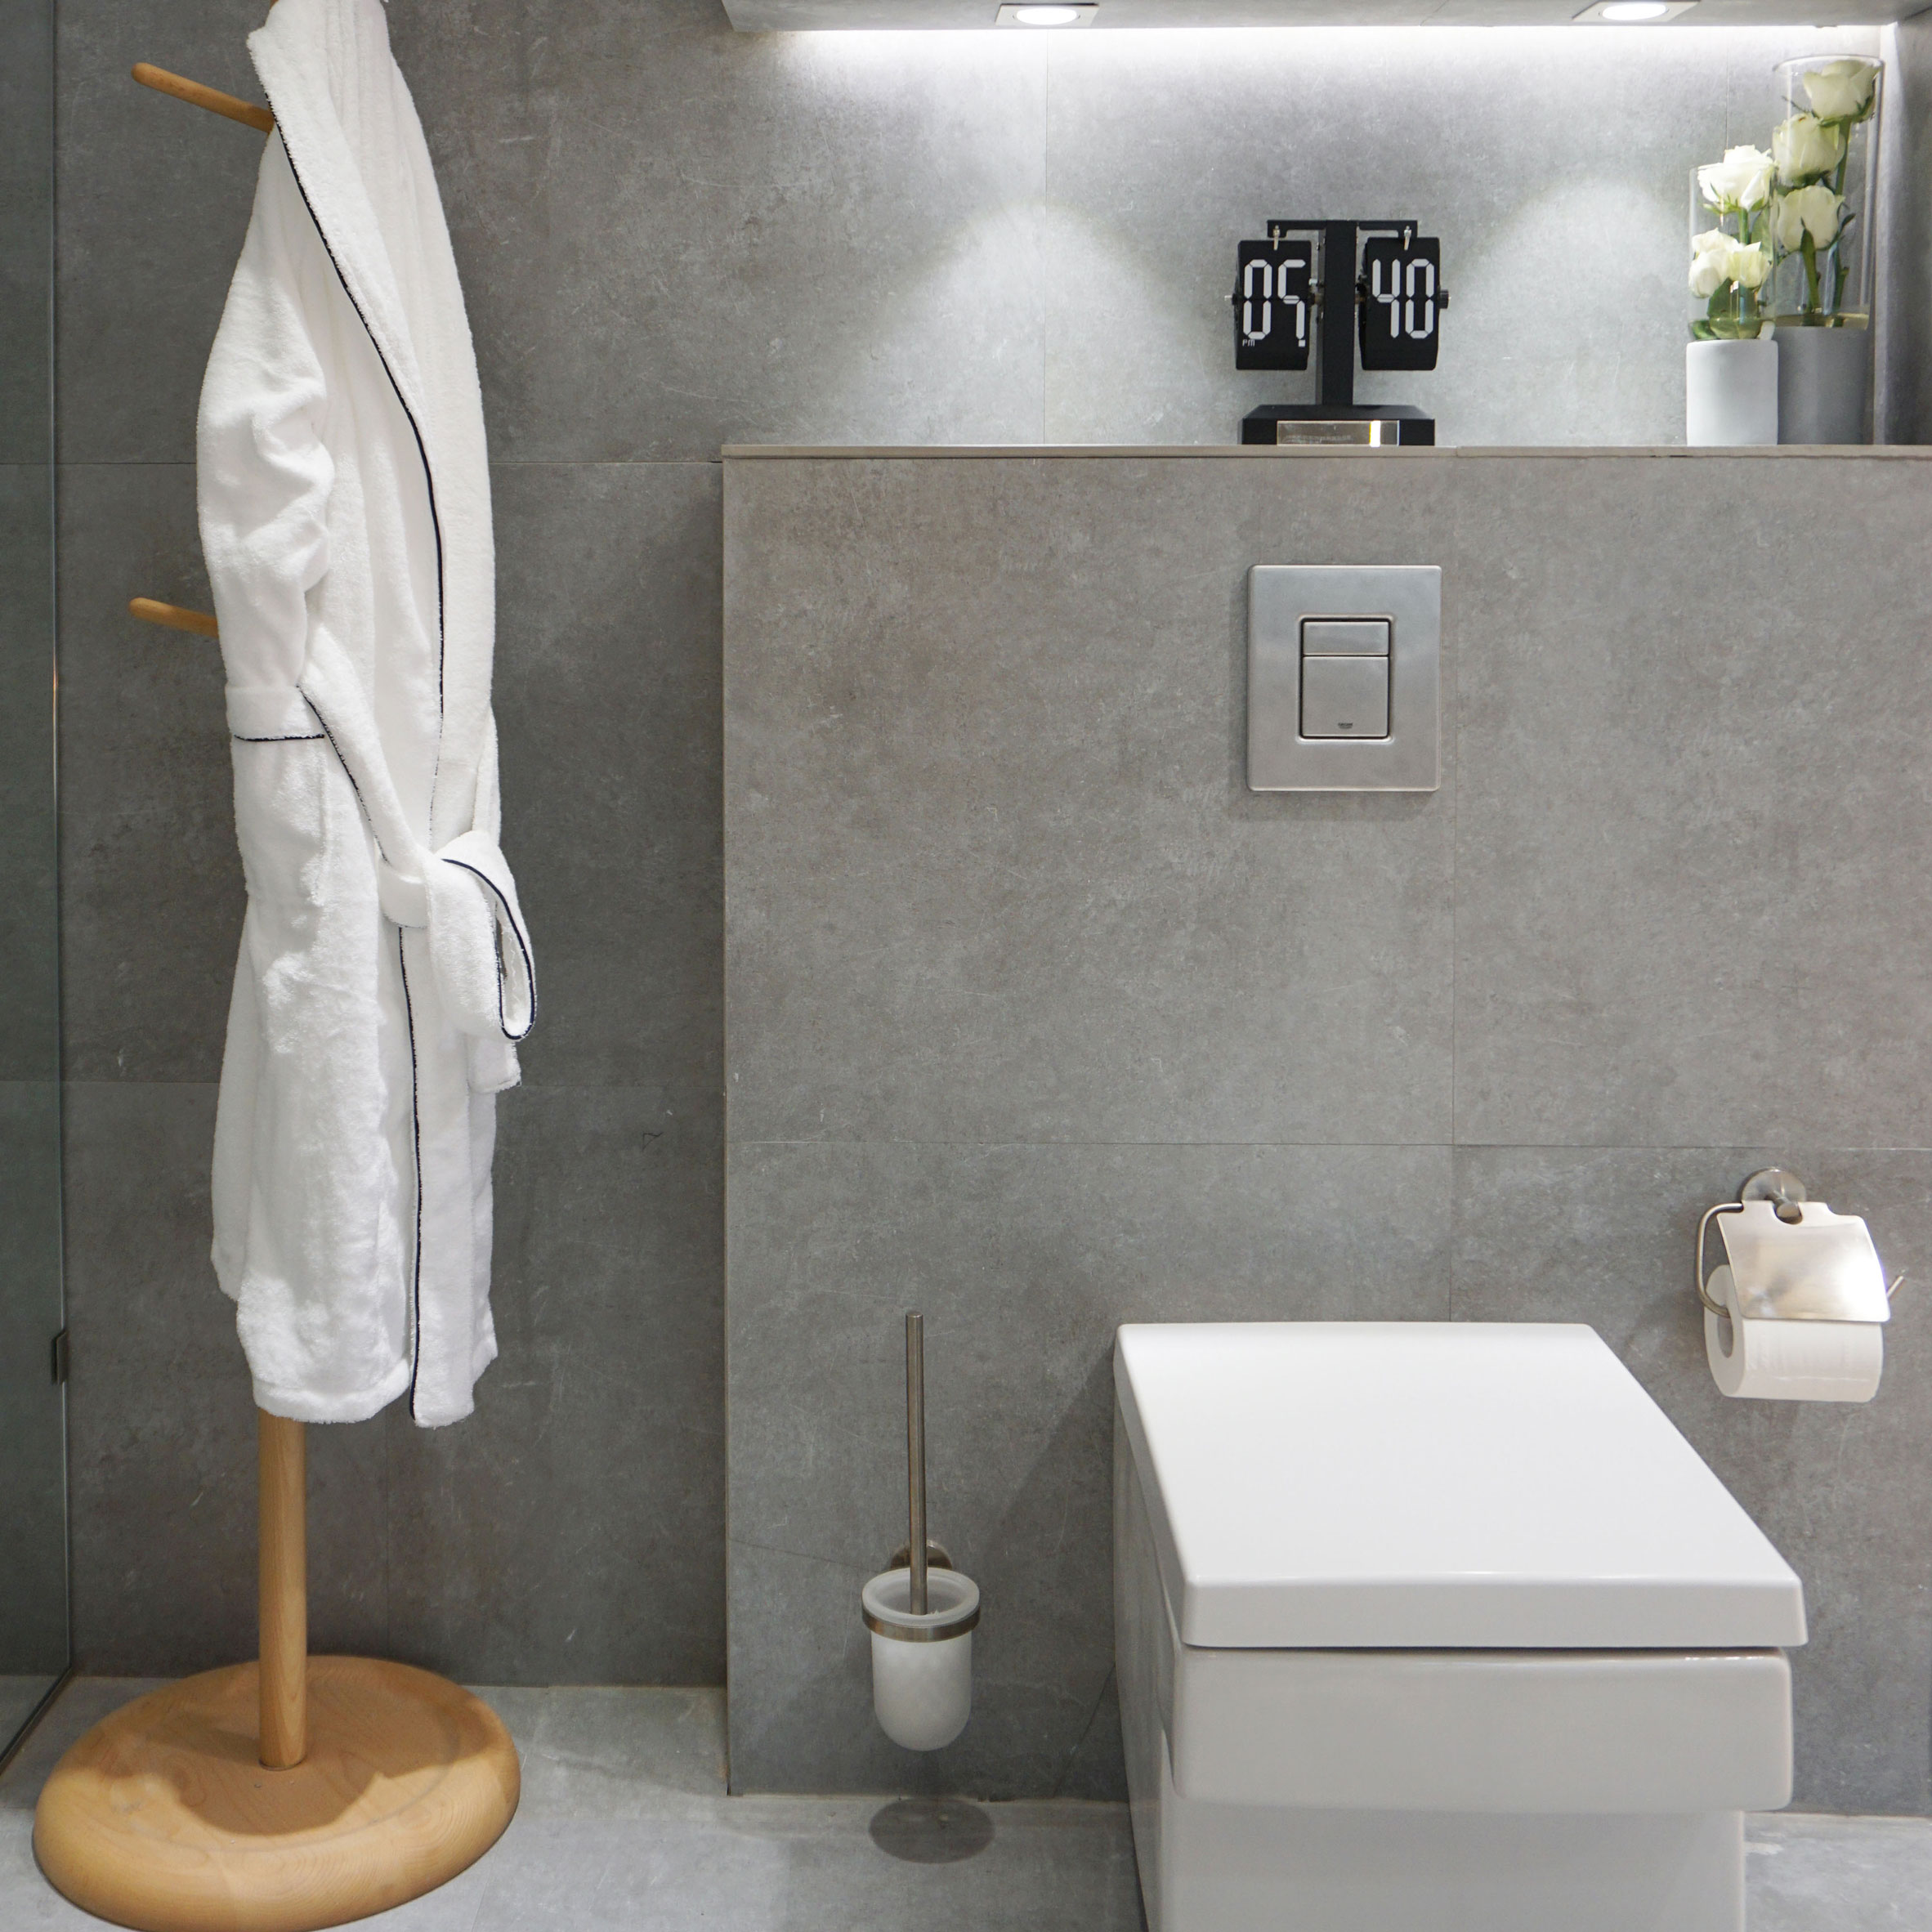 Grohe releases new collection of ceramic bathroom products